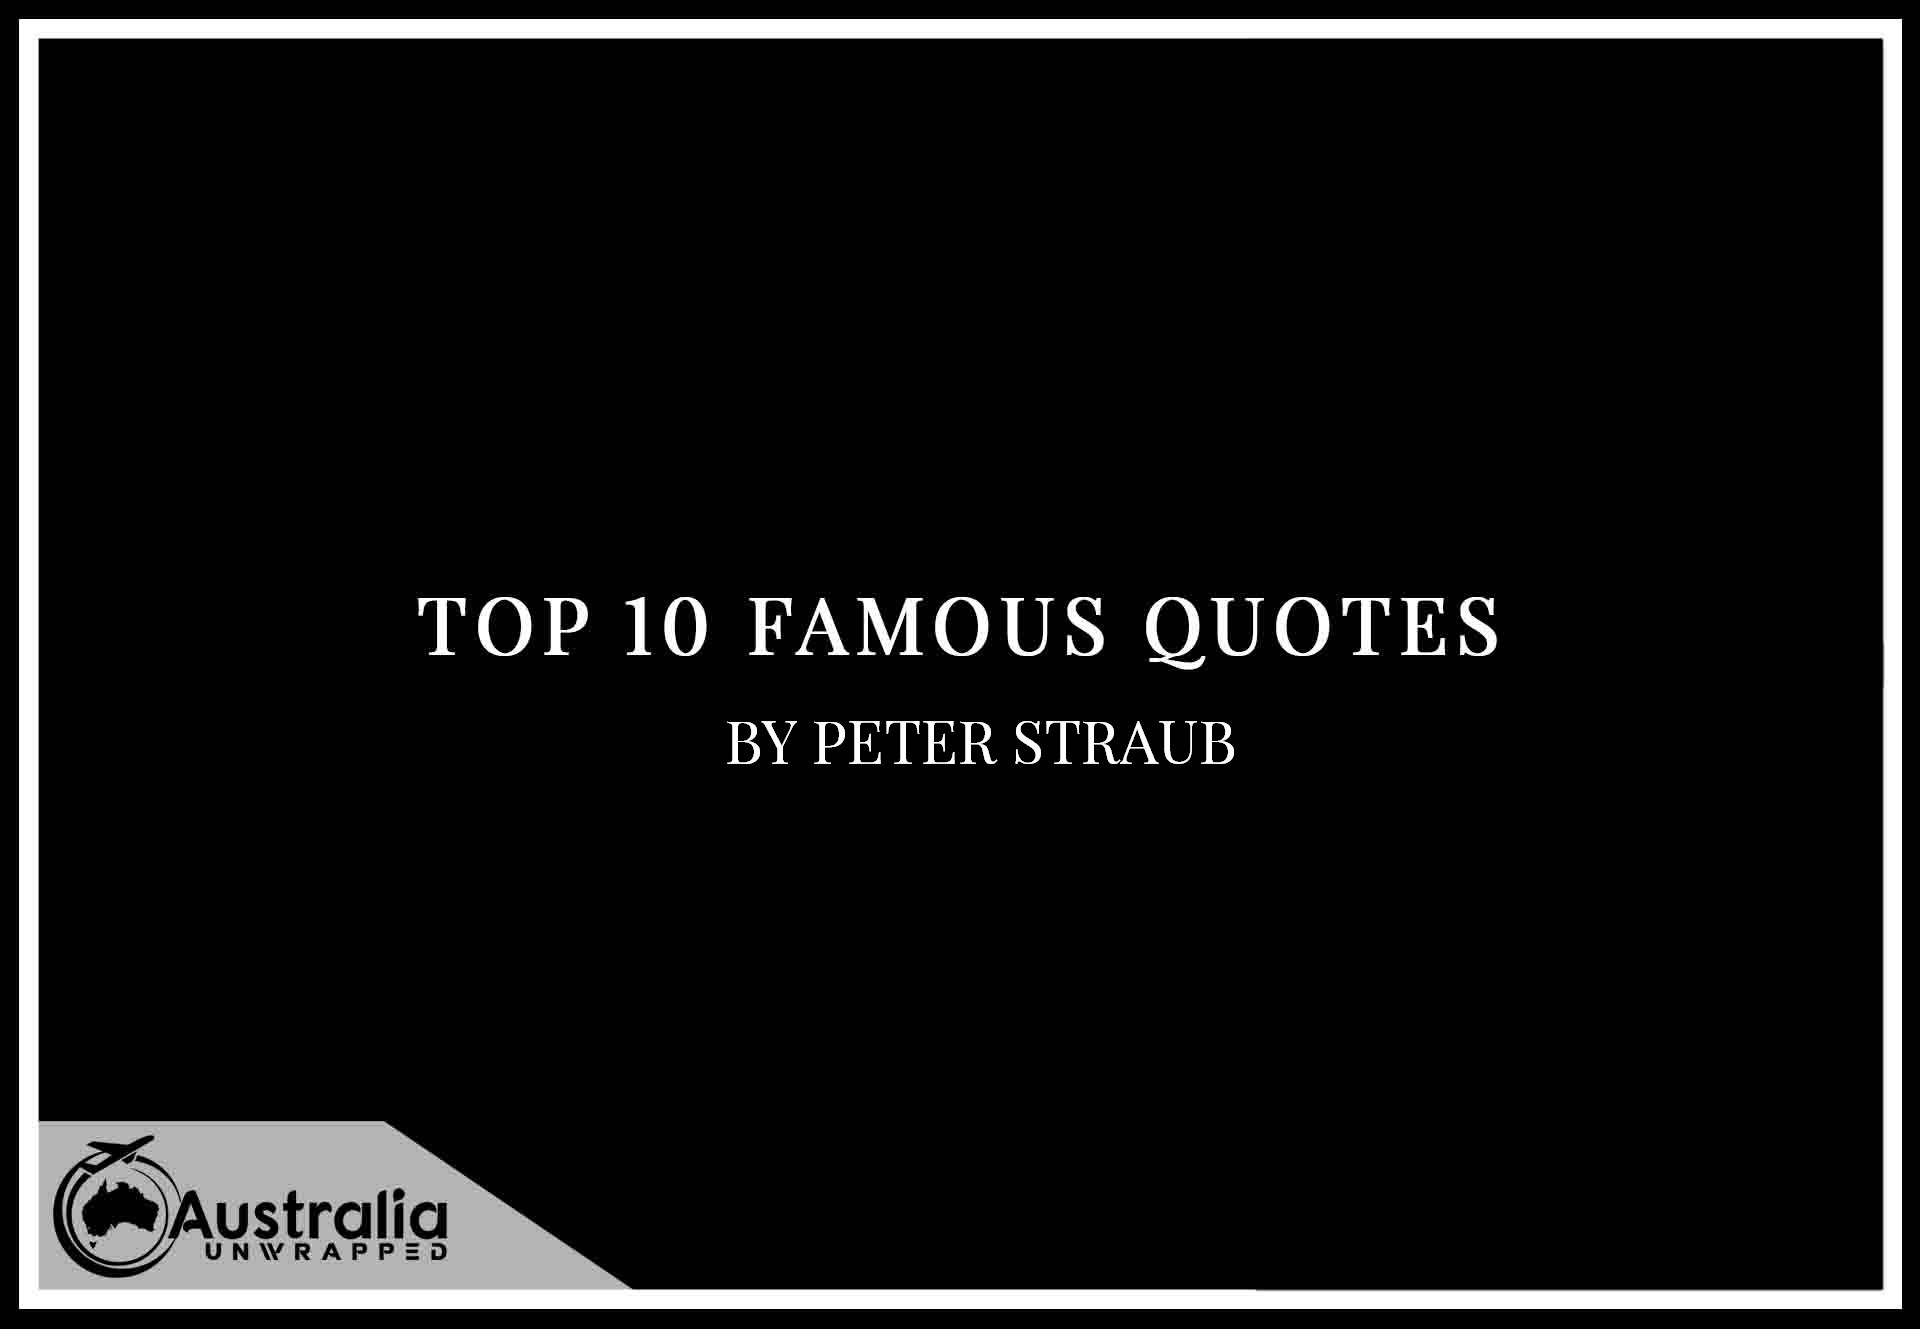 Top 10 Famous Quotes by Author Peter Straub